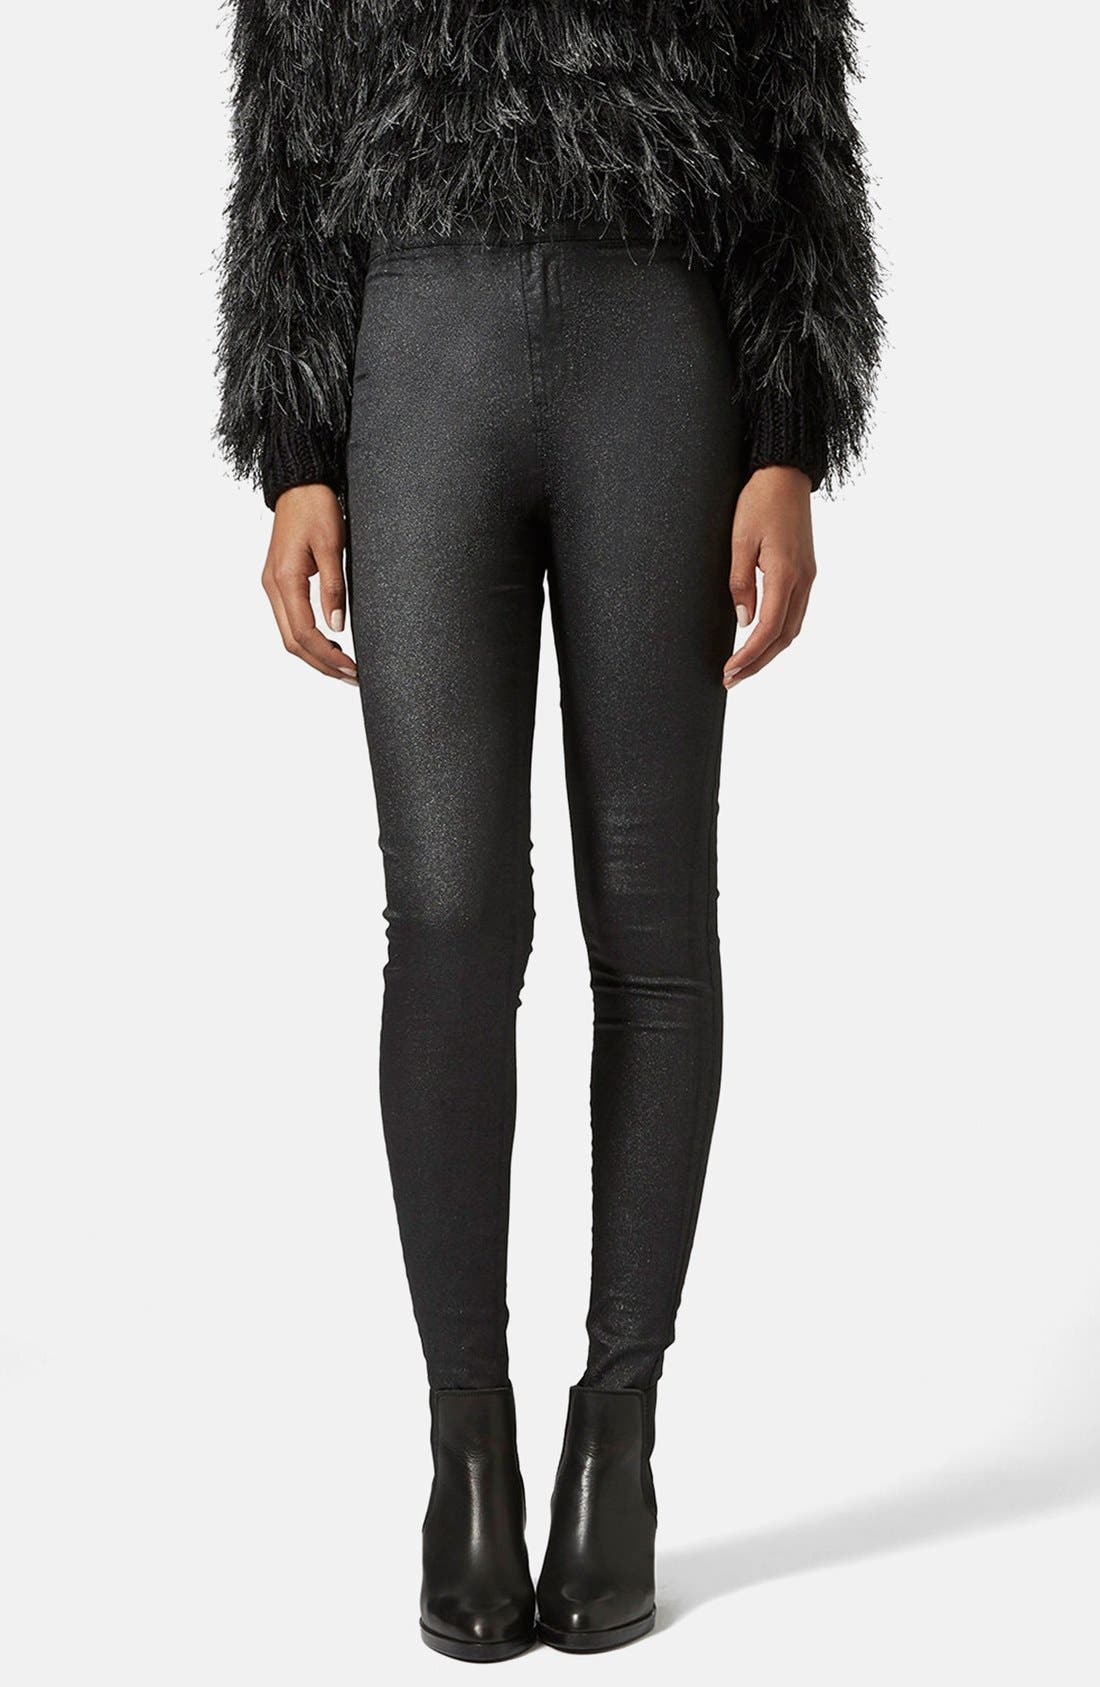 Alternate Image 1 Selected - Topshop Moto 'Joni' Glitter Skinny Jeans (Black) (Regular, Short & Long)